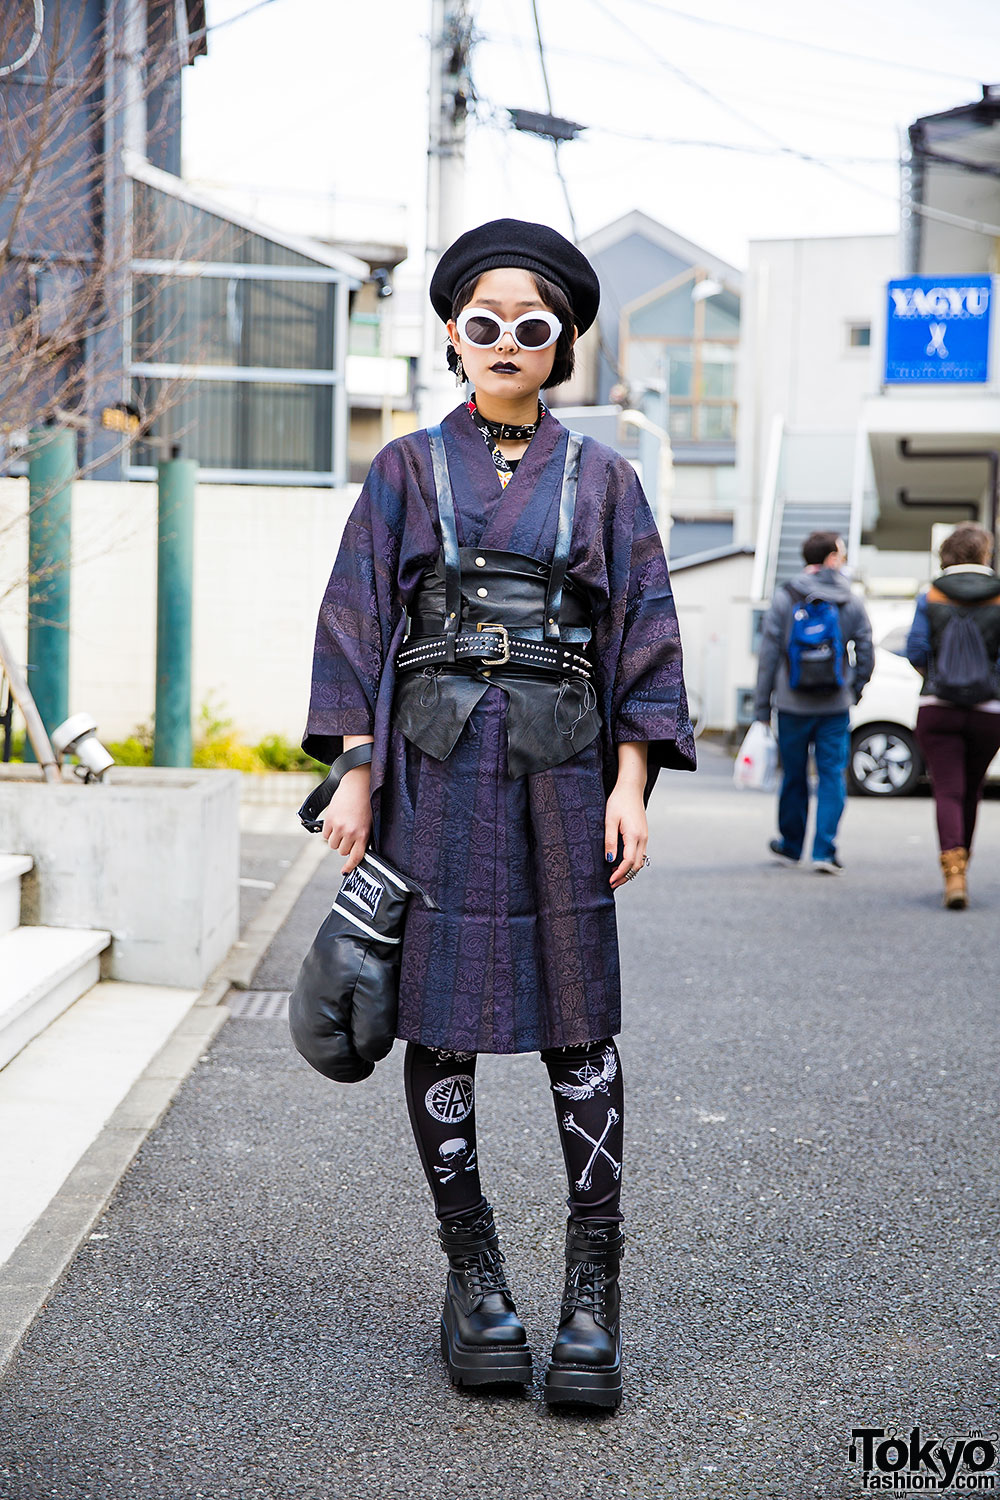 Harajuku Girl In Harness Over Kimono W Glad News Demonia Glavil